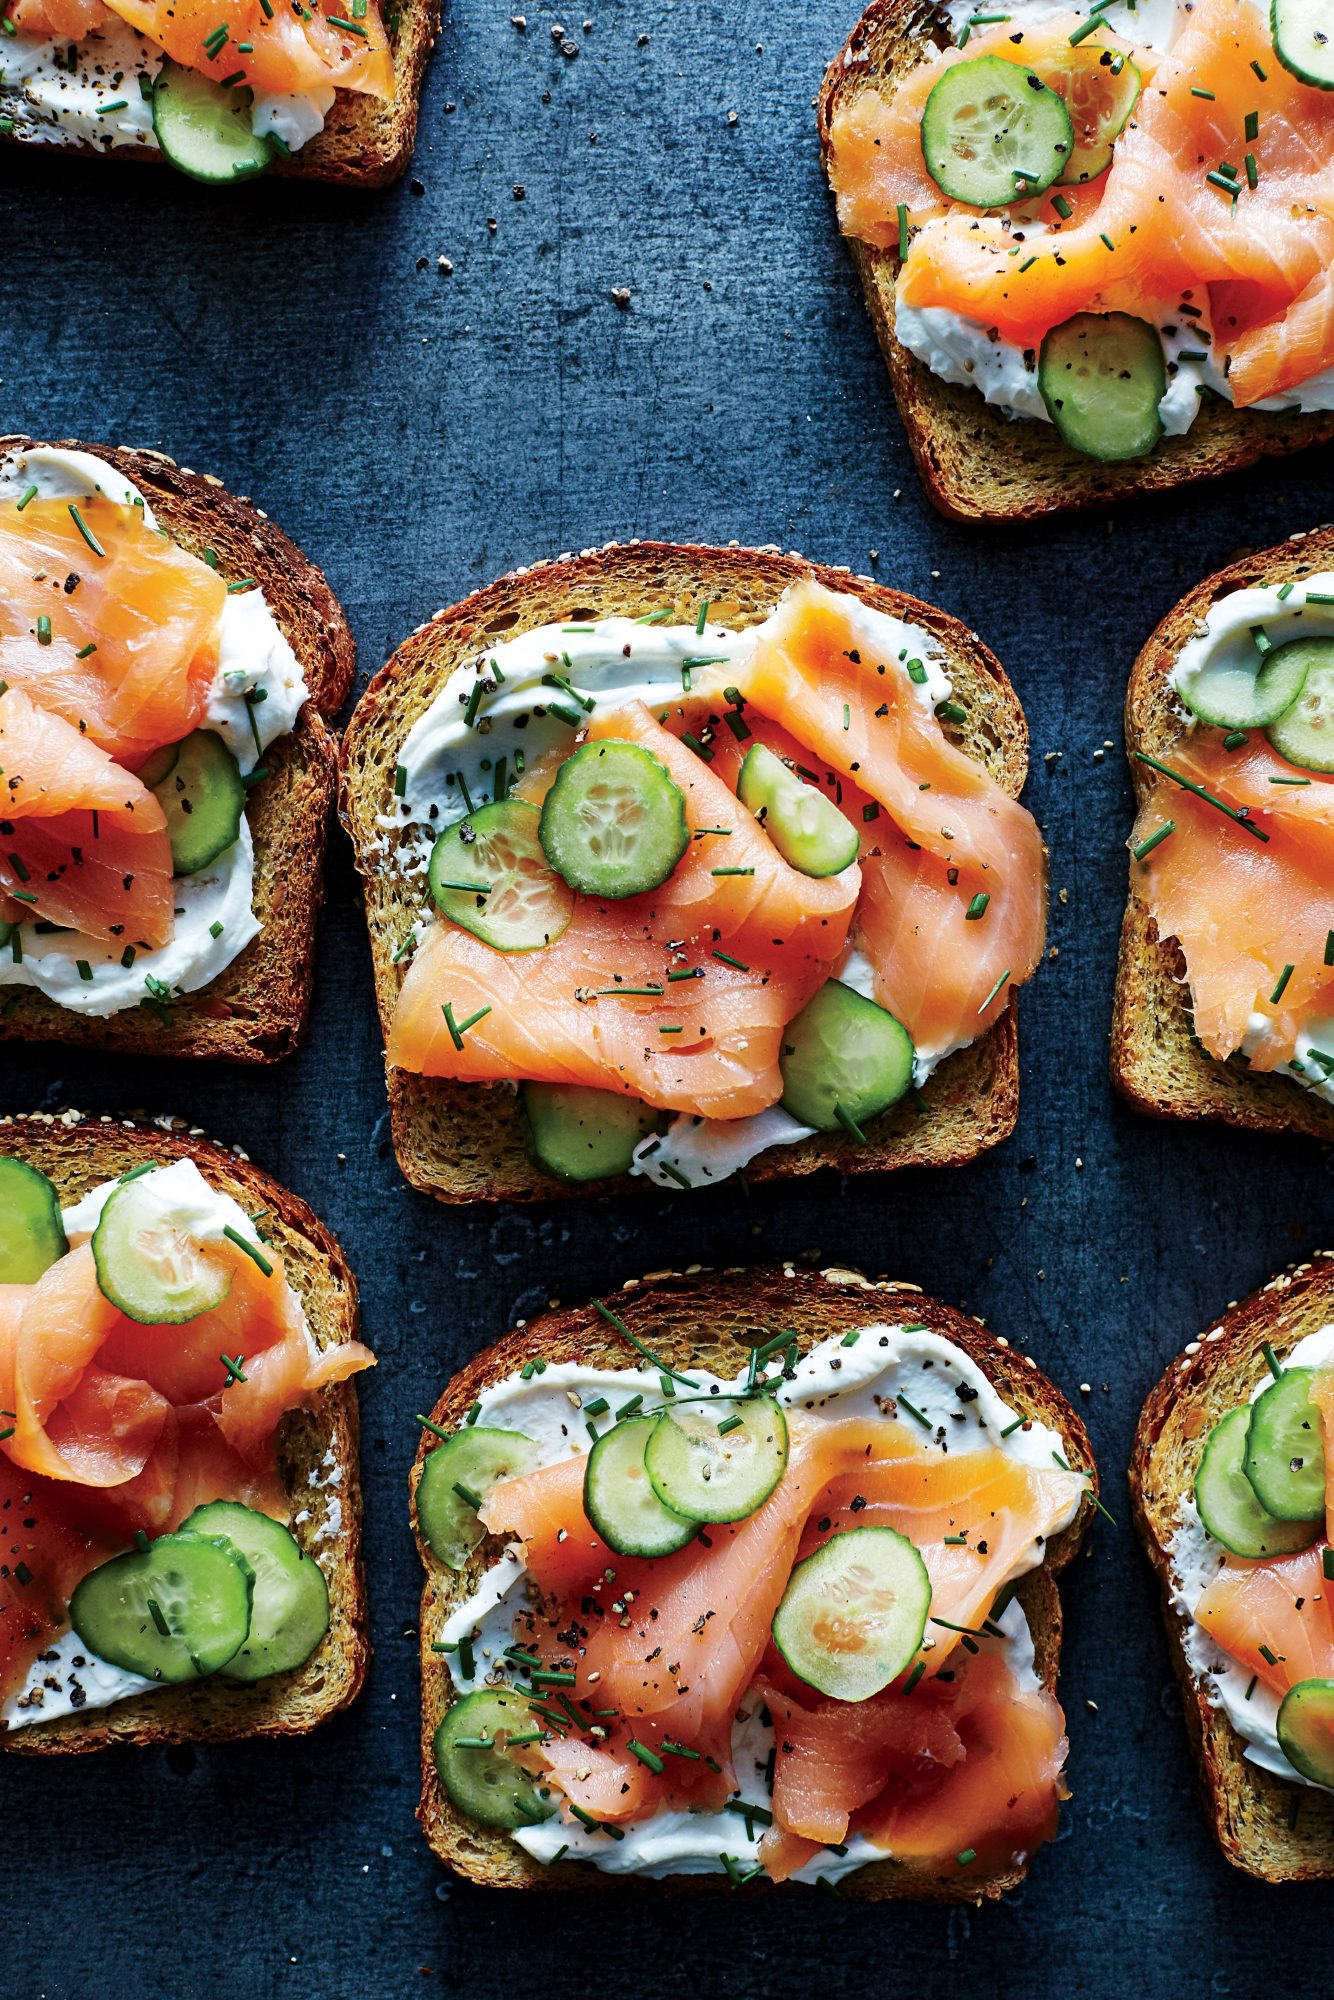 Cucumber-Lox Toast                            RecipeThe loaded deli bagel works perfectly as an instant toast topper. Greek yogurt has the same tang and richness as cream cheese, and you don't have to wait for it to soften. Sprinkle with additional chives for more punch.